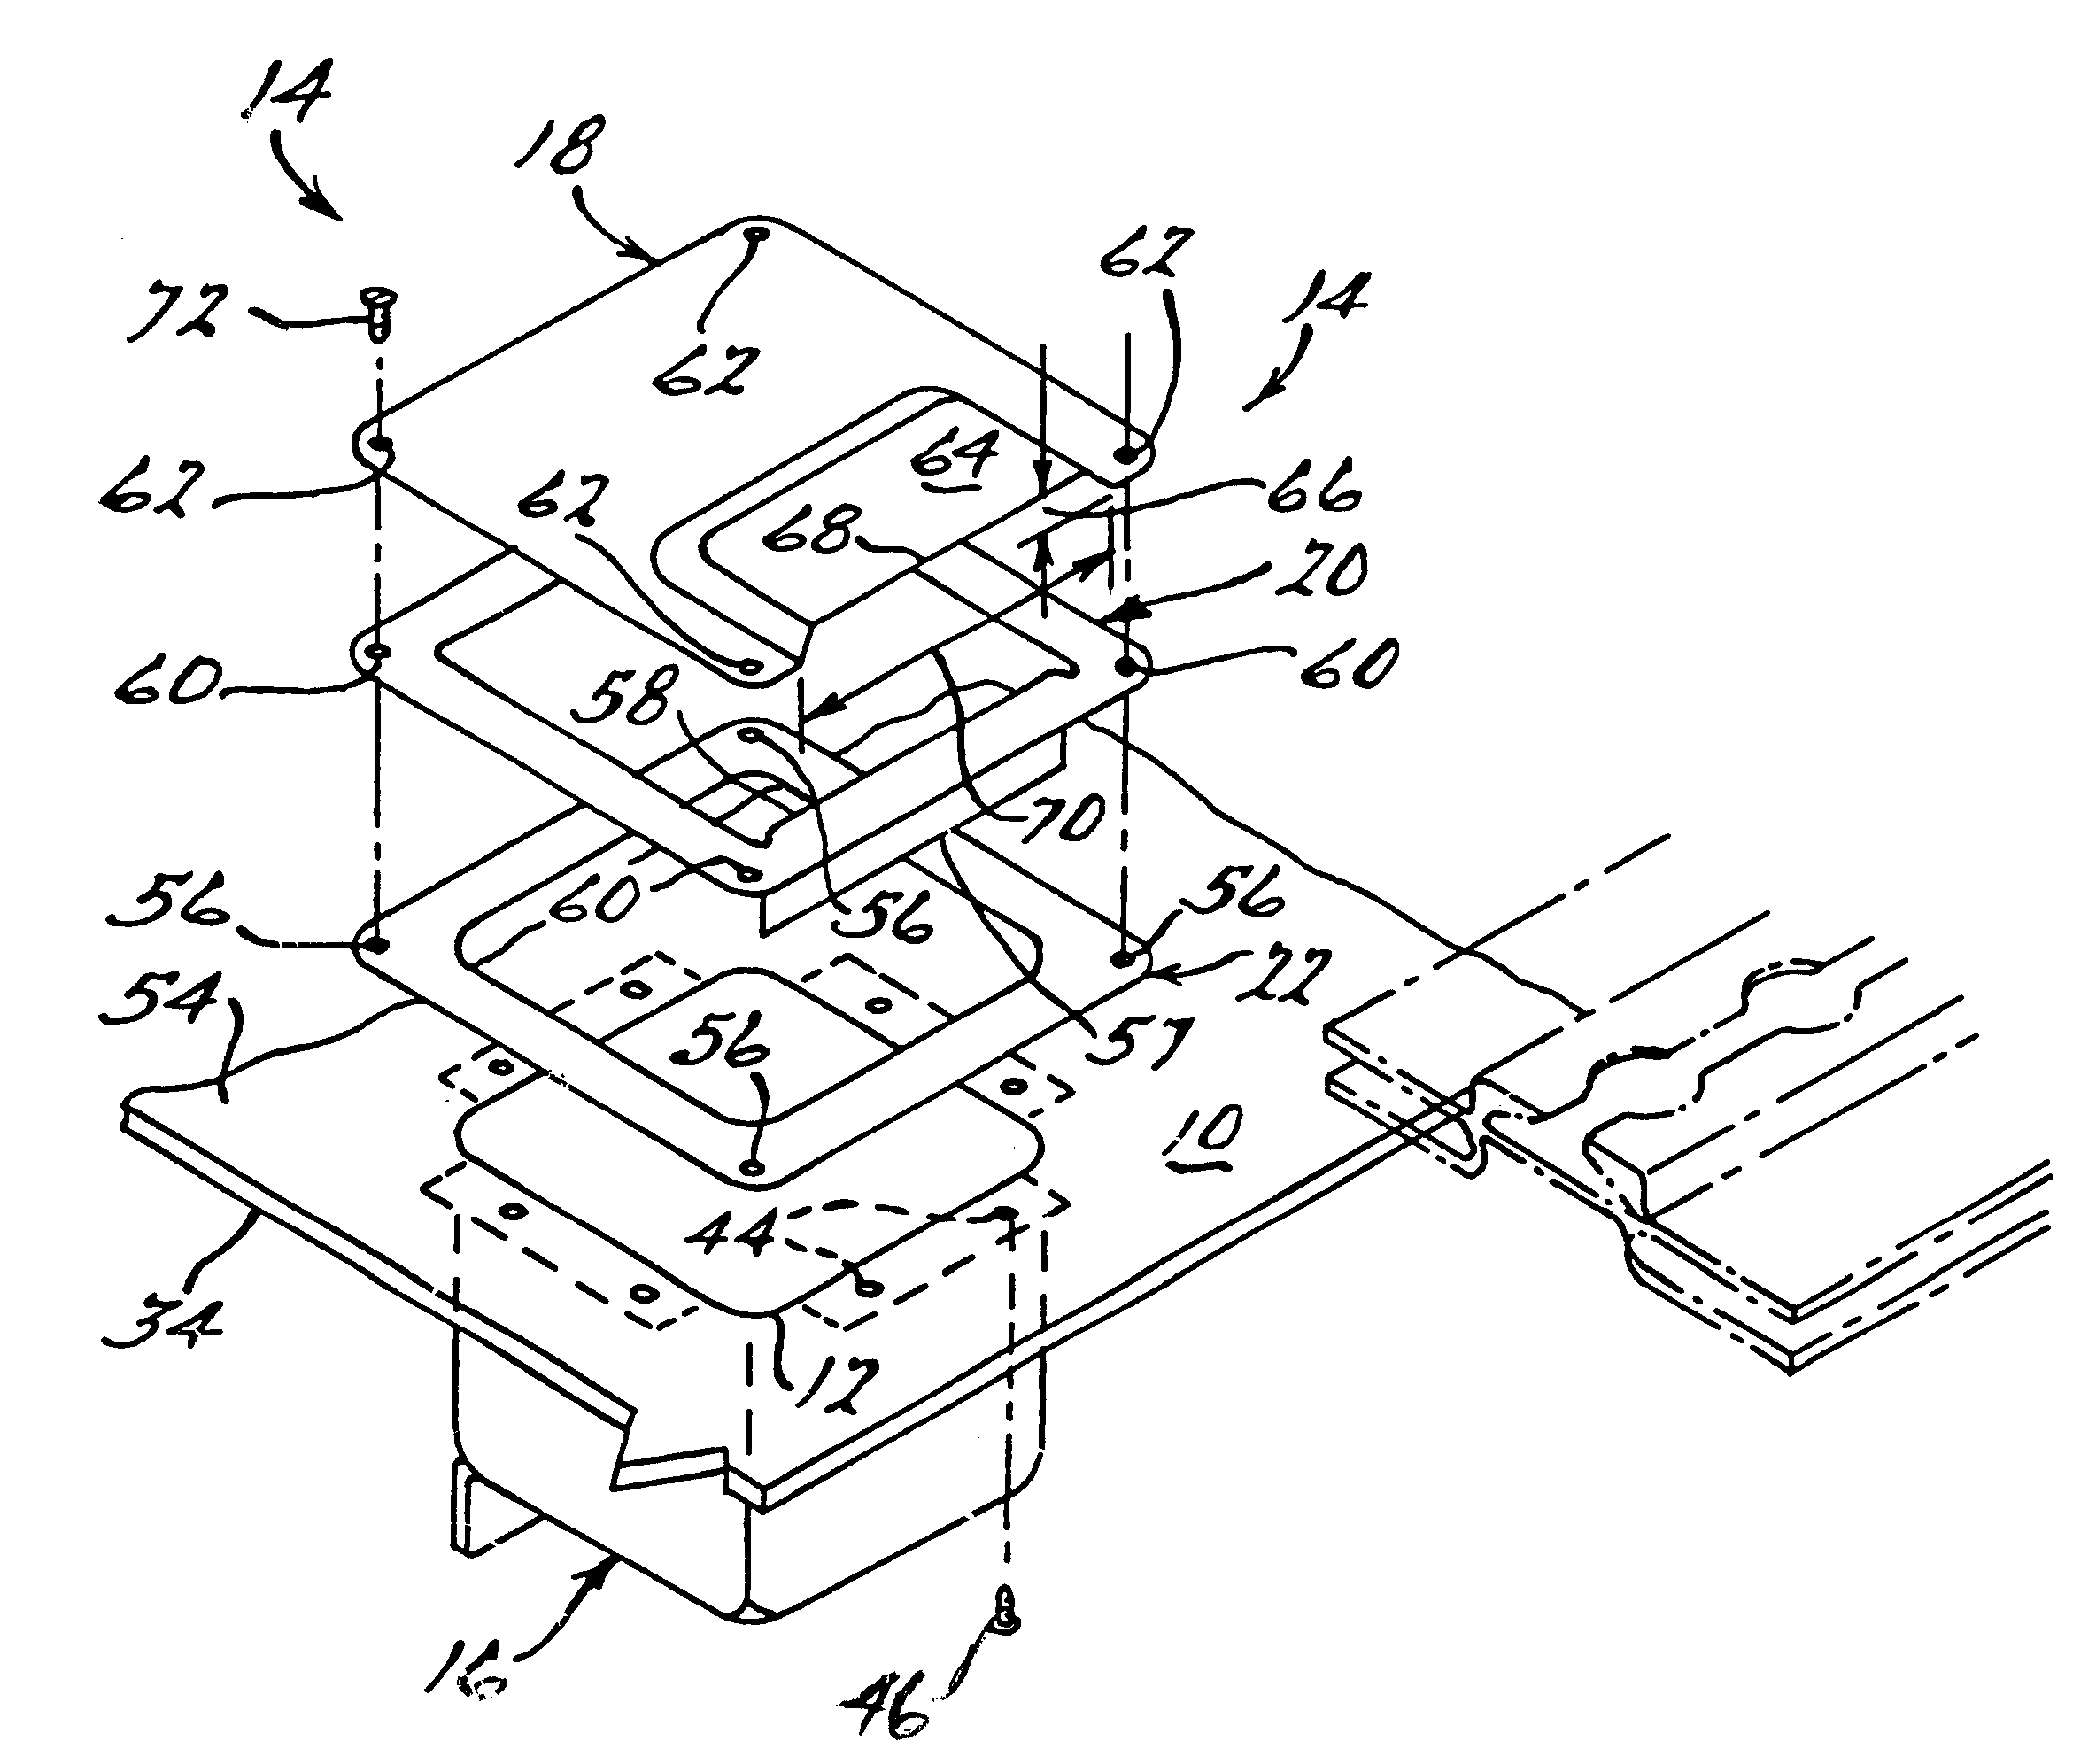 patent us6563047 aircraft junction box patents 220 Wiring Junction Box patent drawing